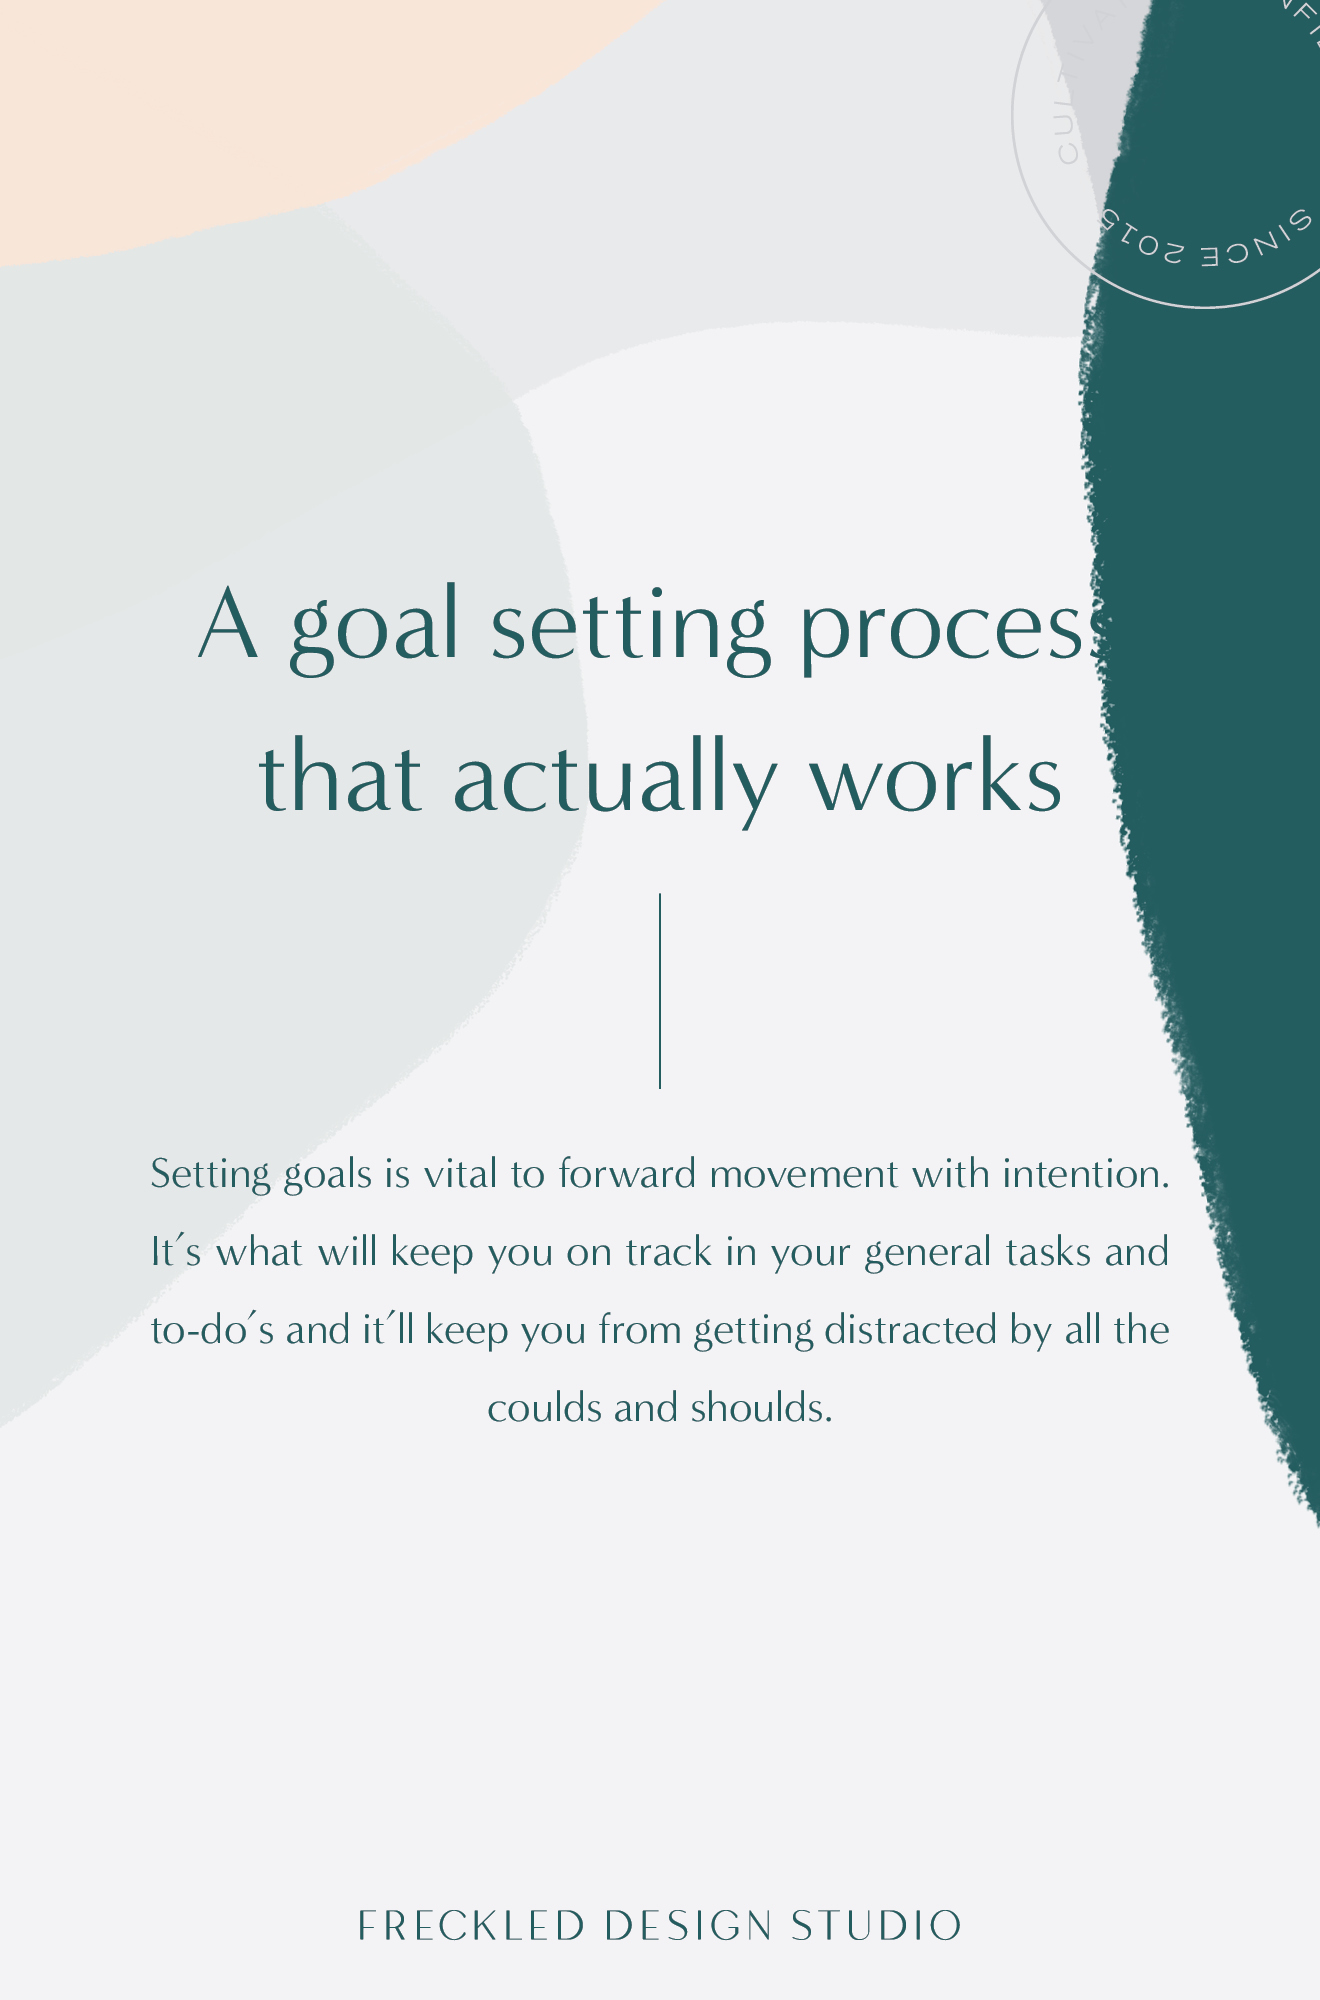 A goal setting process that actually works3.jpg